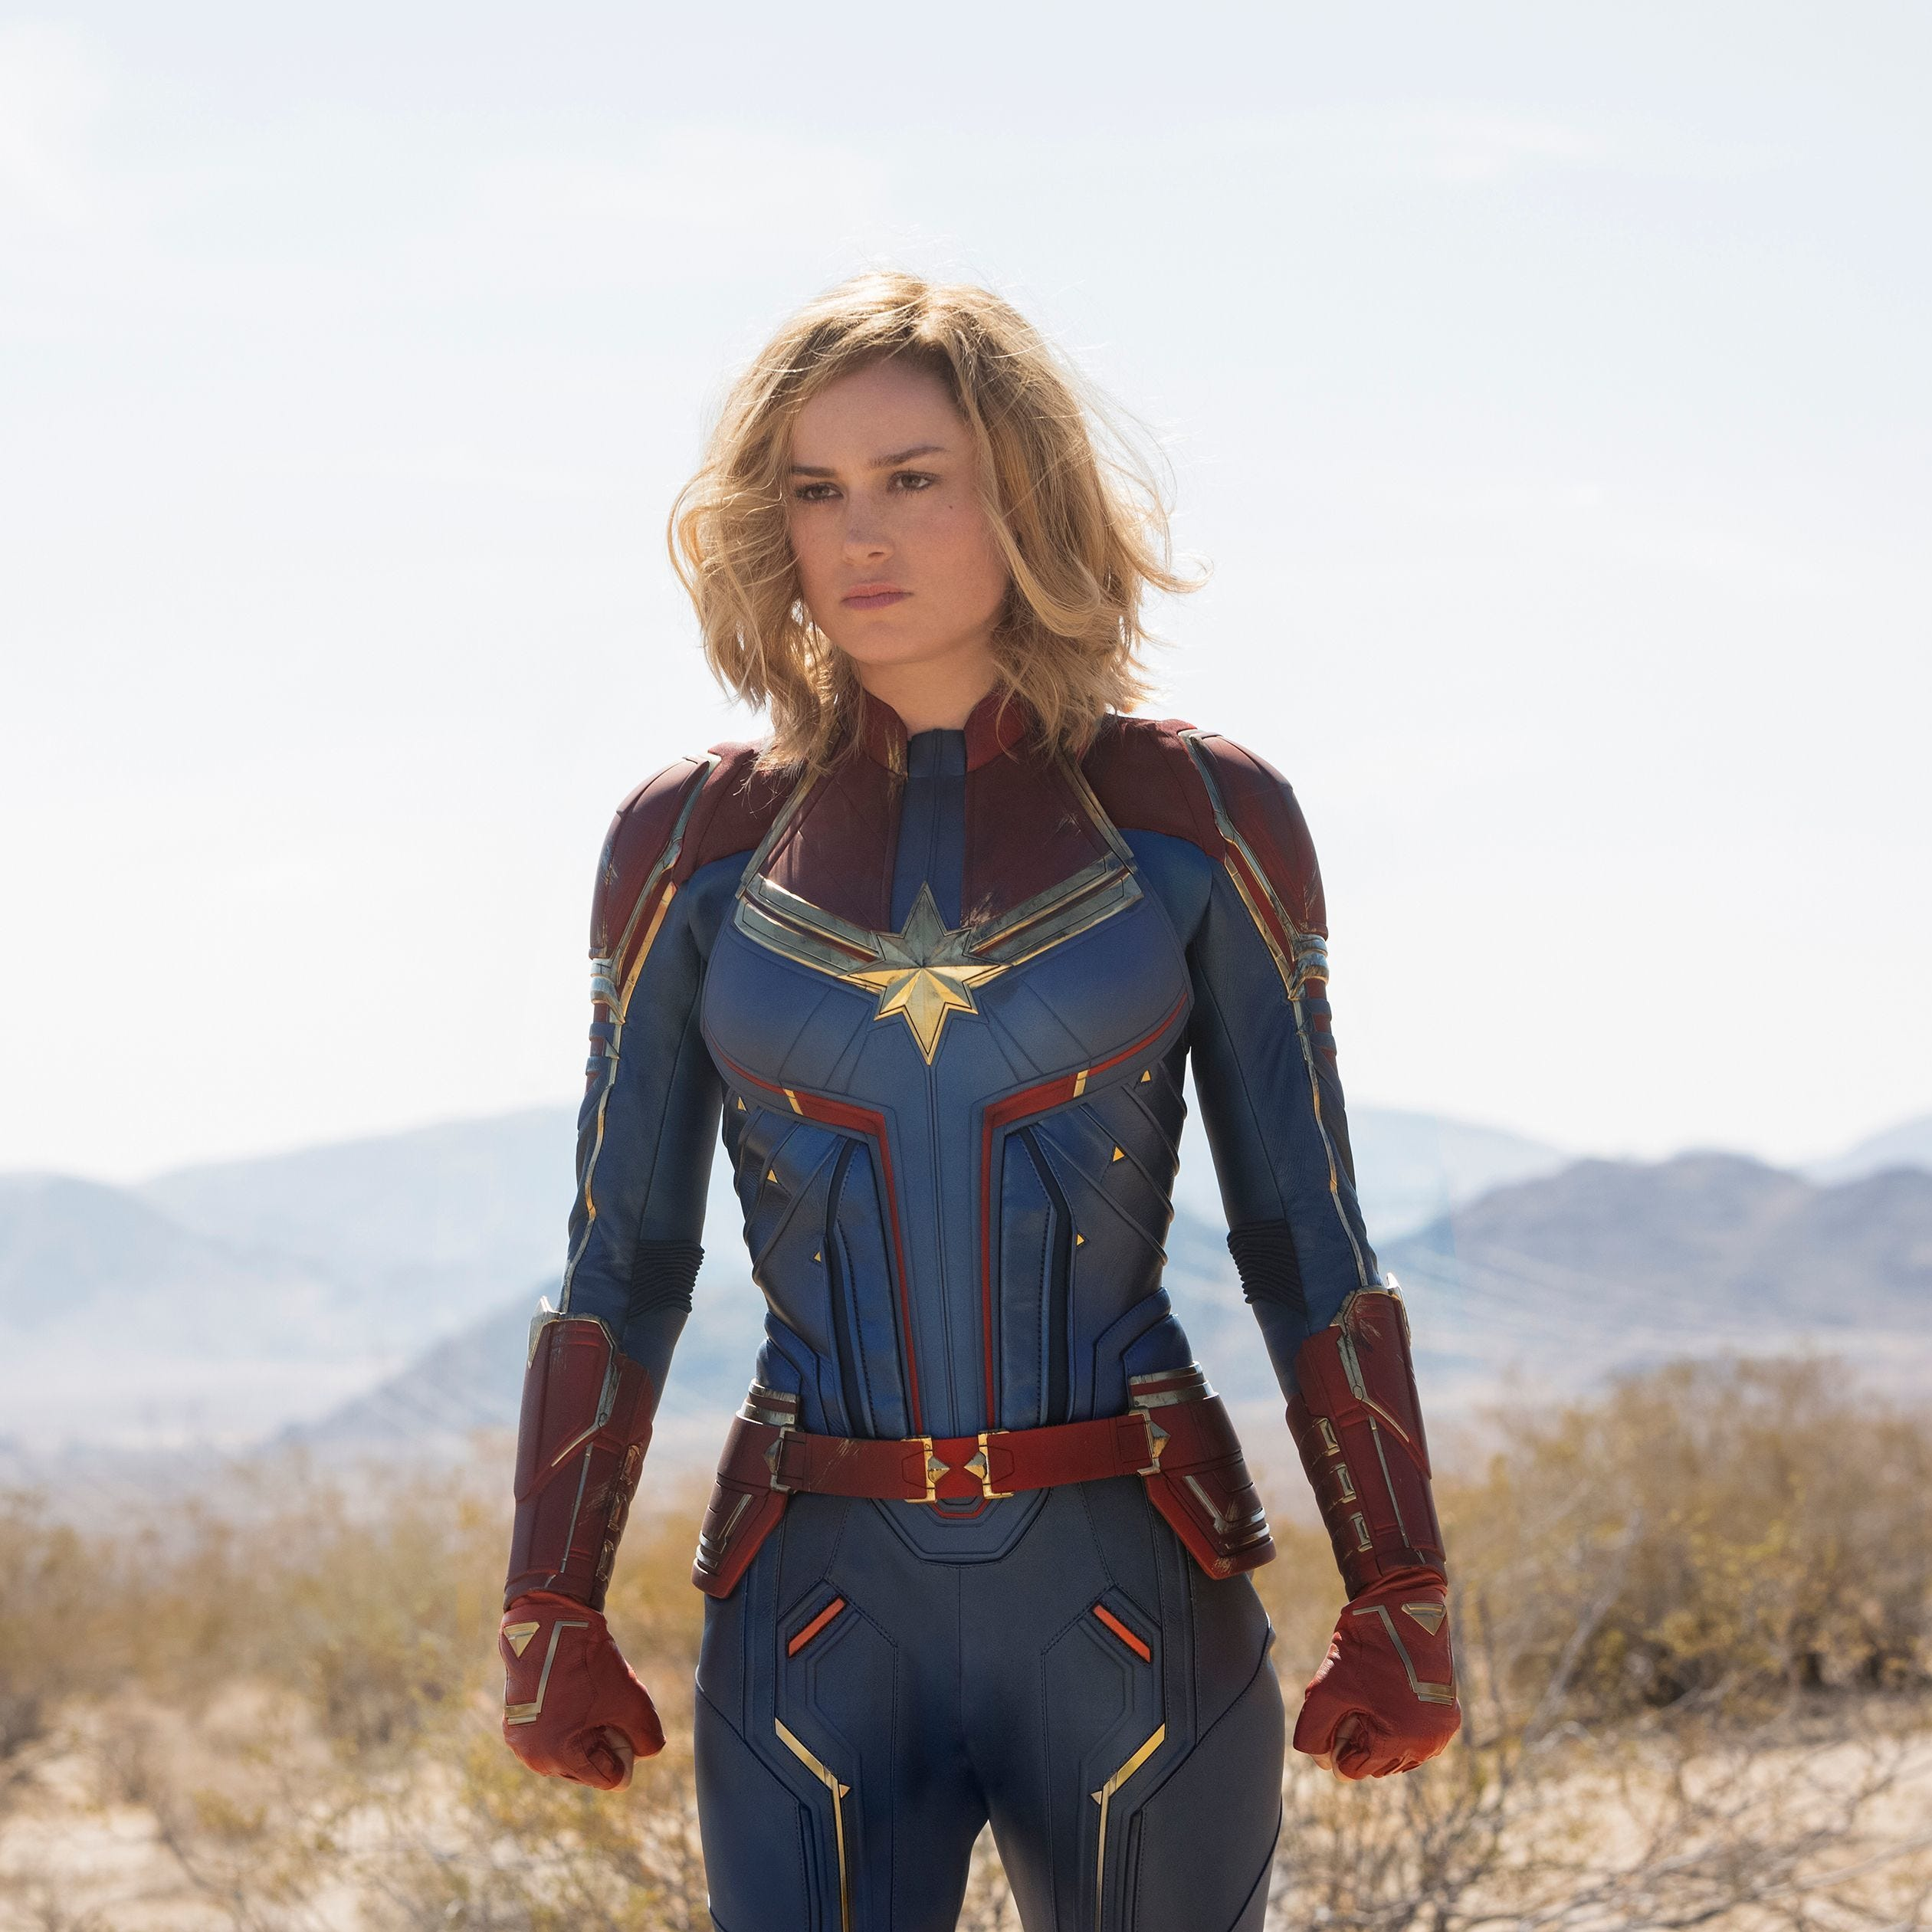 'Captain Marvel' introduces a powerful female lead. Young girls should see that.